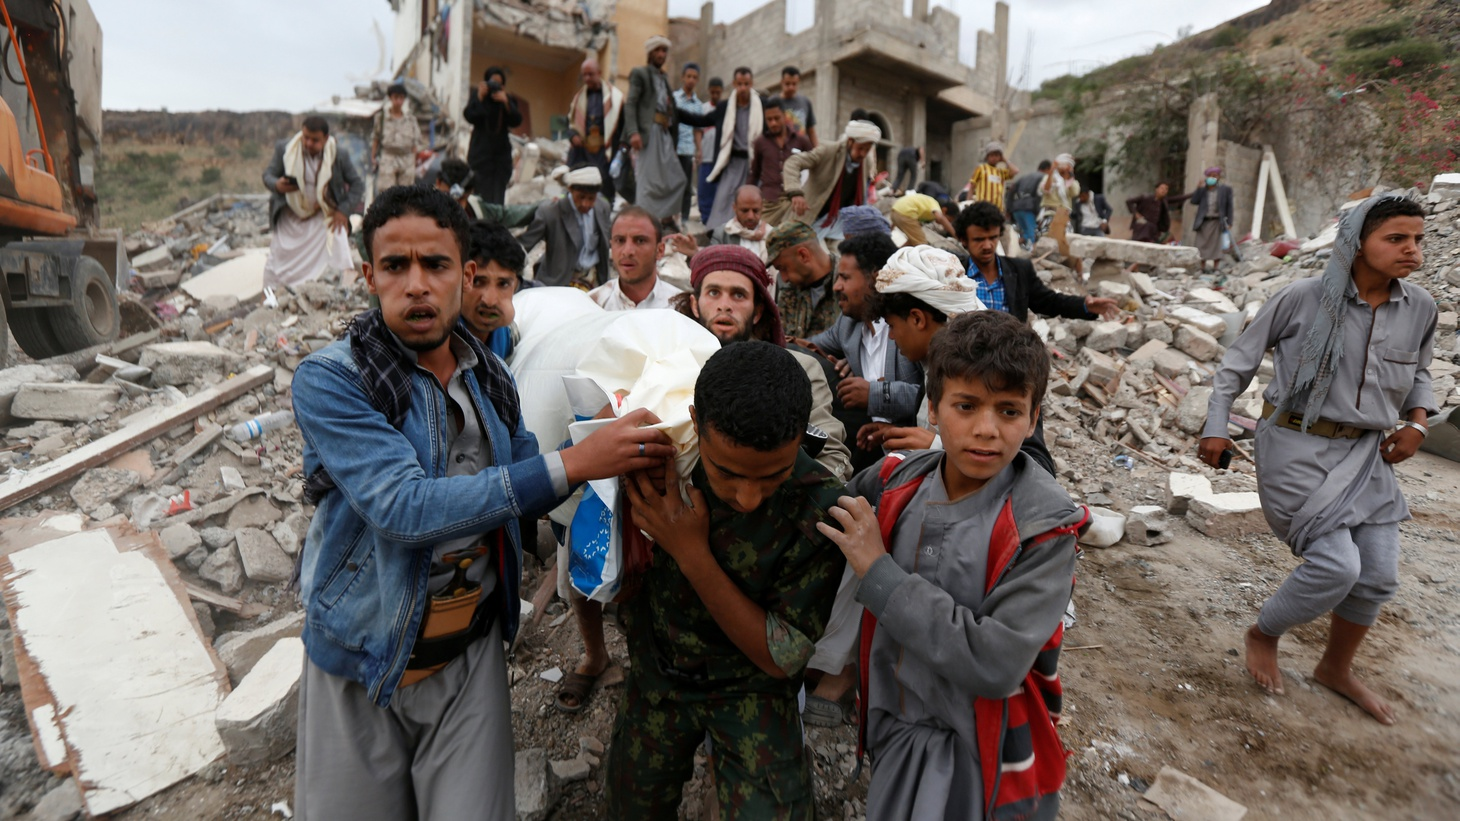 People carry the body of Muhammad Mansour recovered from under the rubble of a house destroyed by a Saudi-led air strike in Sanaa, Yemen. Eight family members, including five children, were killed, relatives said.